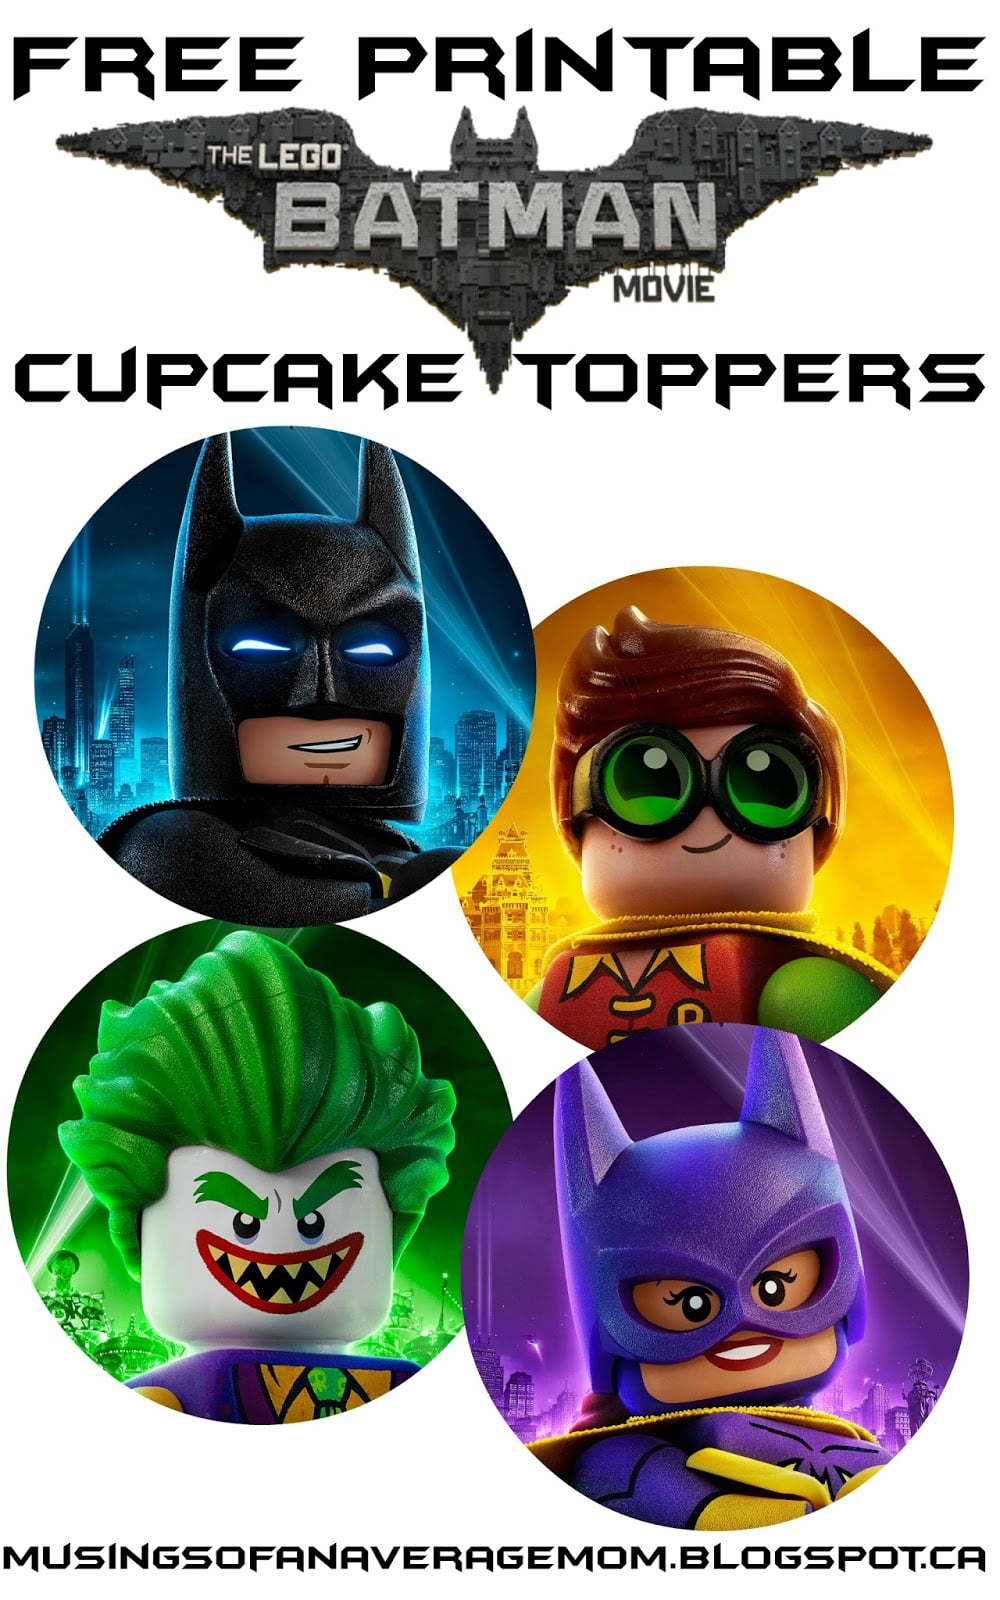 Musings Of An Average Mom  Free Lego Batman Cupcake Toppers